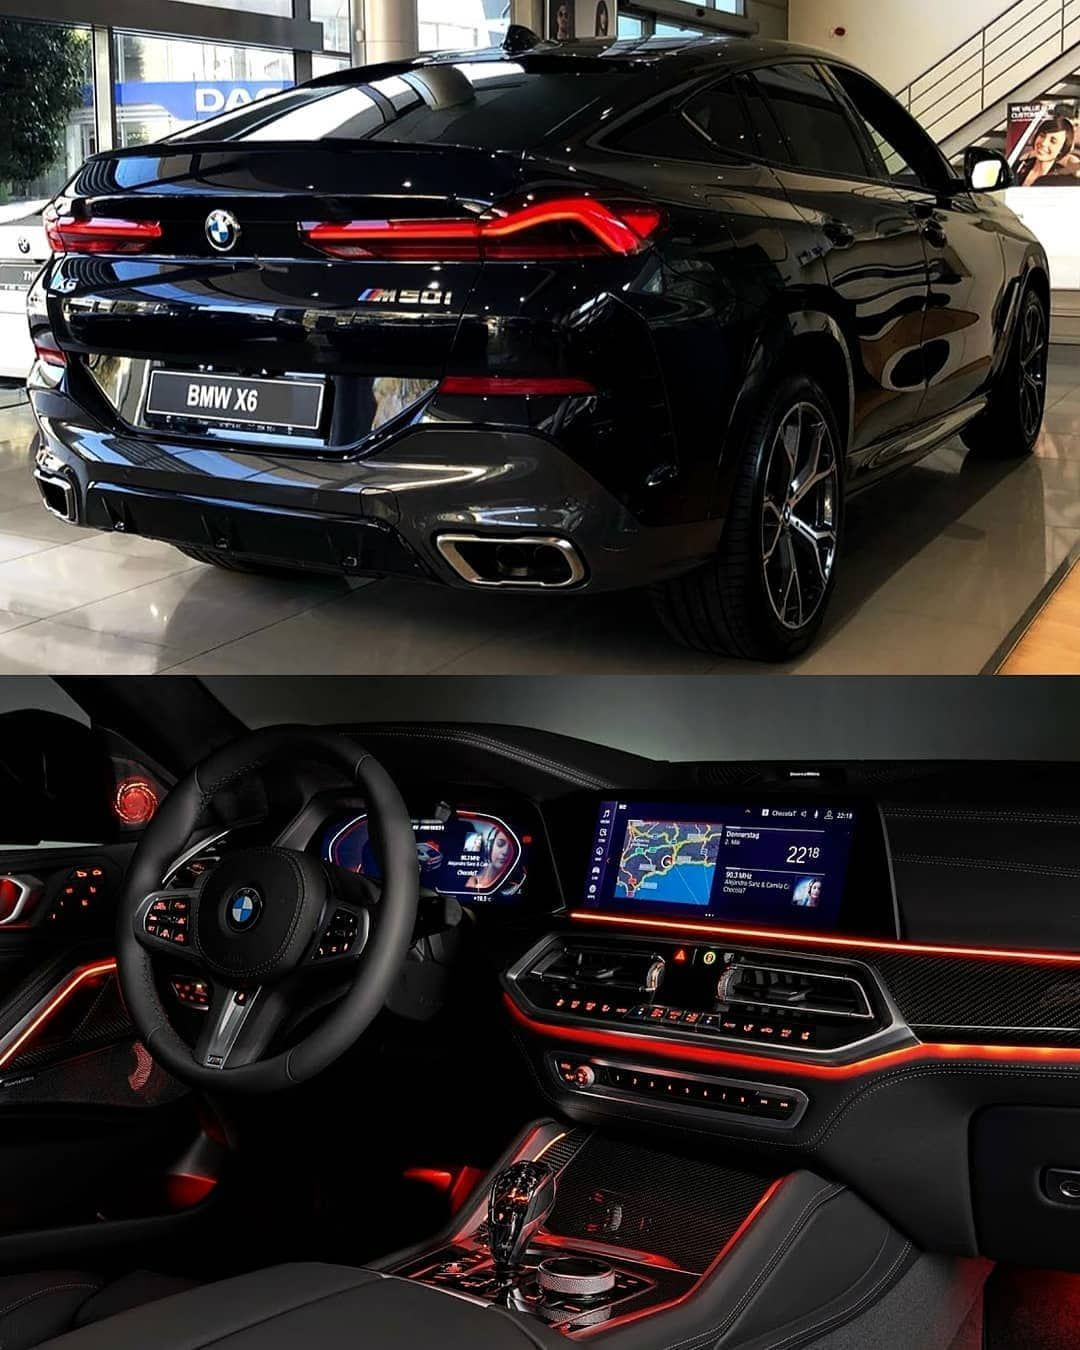 Your Bmw Club On Instagram New Bmw X6 M50i Bmwgeniusleb Cars Power 7 Bmw X6 Bmw New Bmw